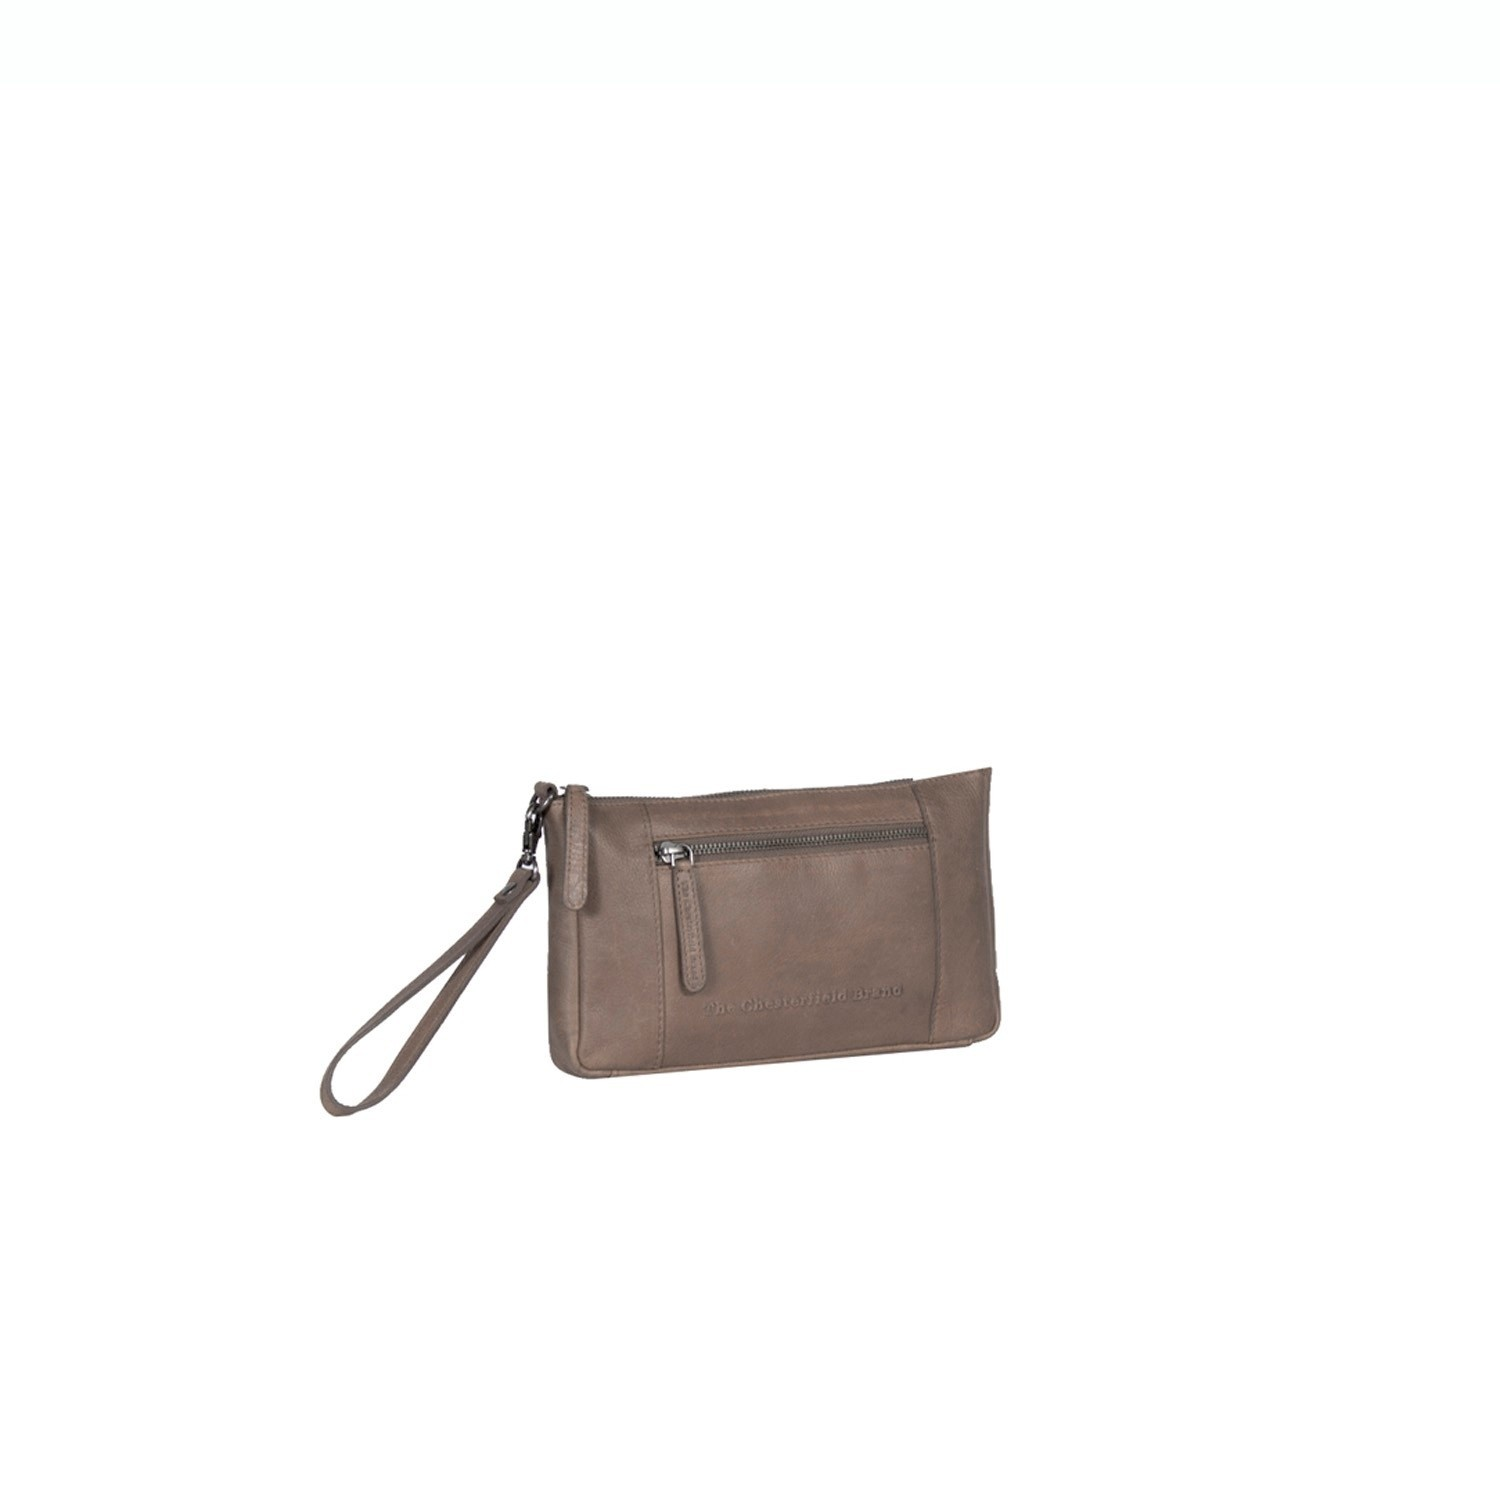 Bilde av Chesterfield Leather Clutch Taupe Sonia